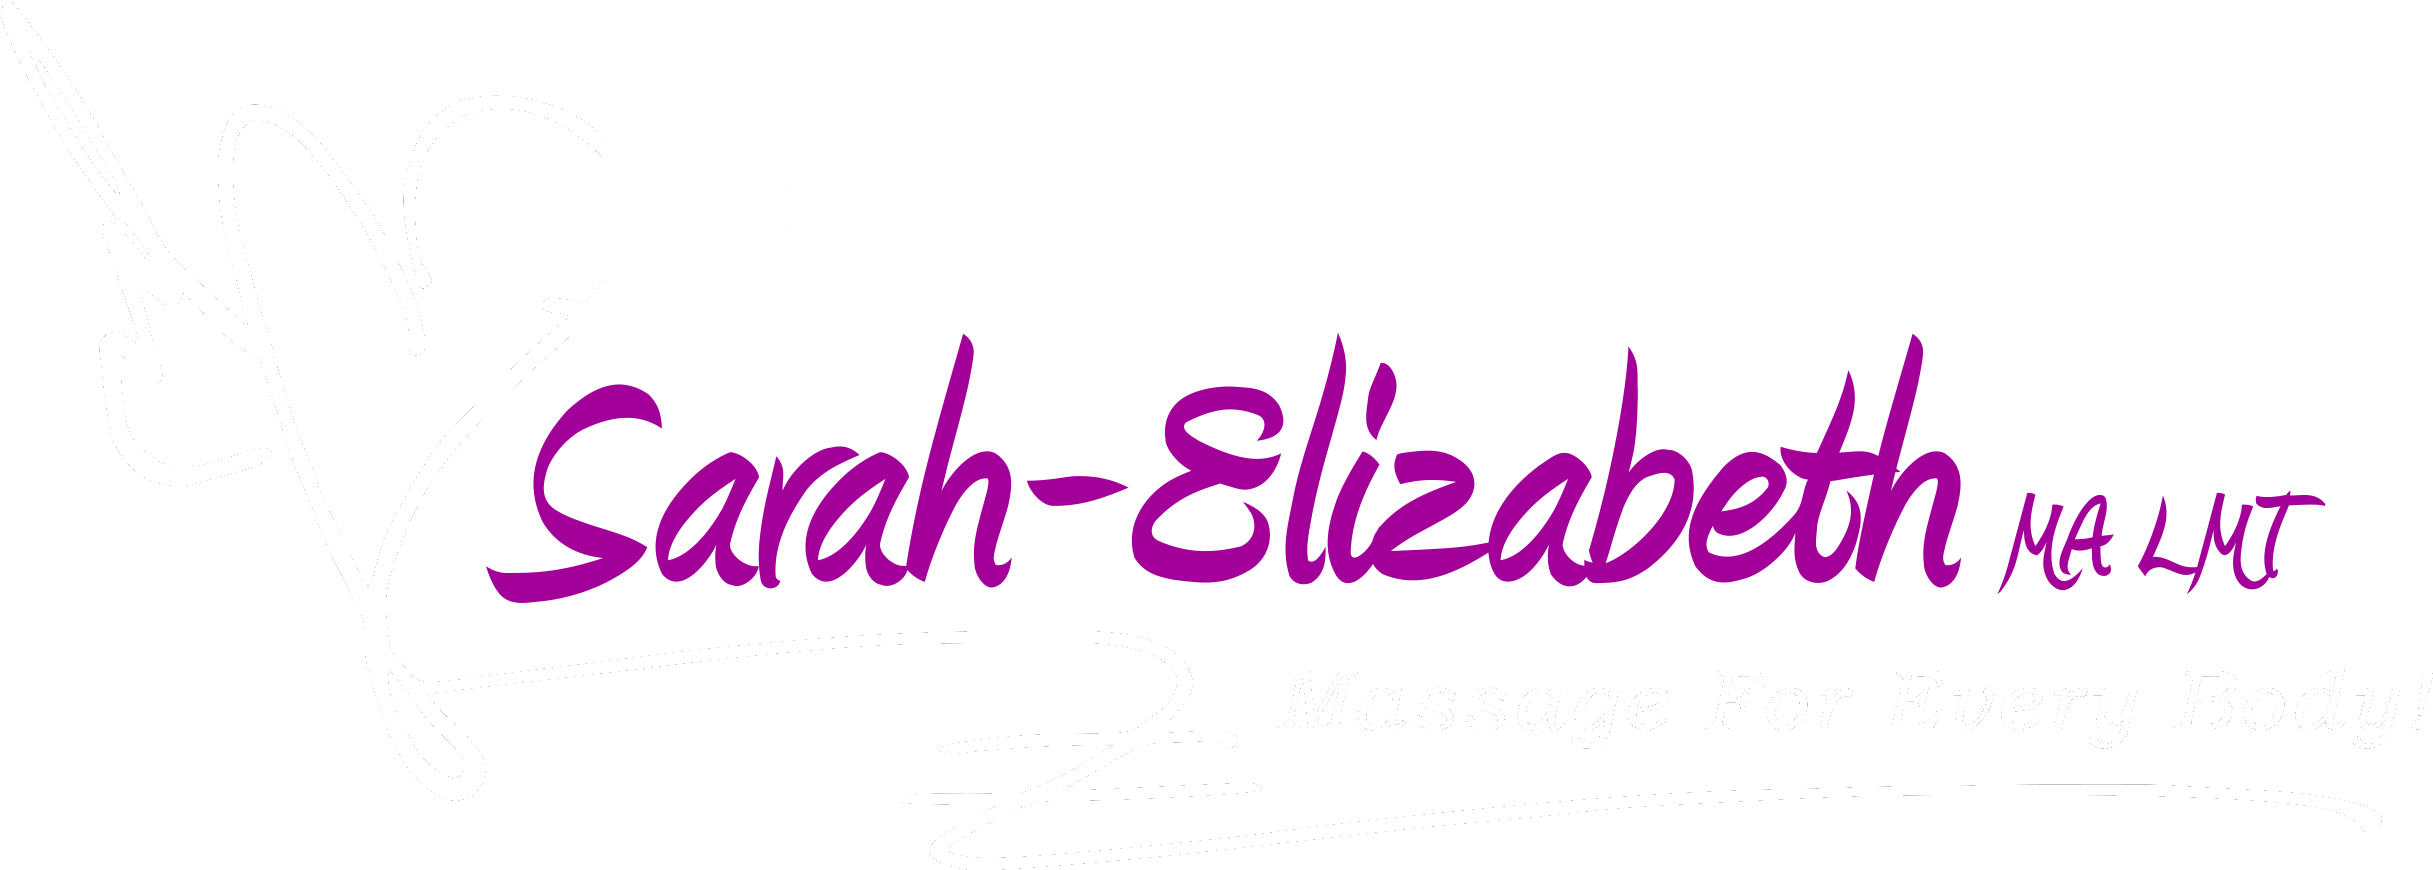 """Sarah-Elizabeth, MA, LMT. Heart with wings to the left, and at the bottom, """"massage for every body"""""""